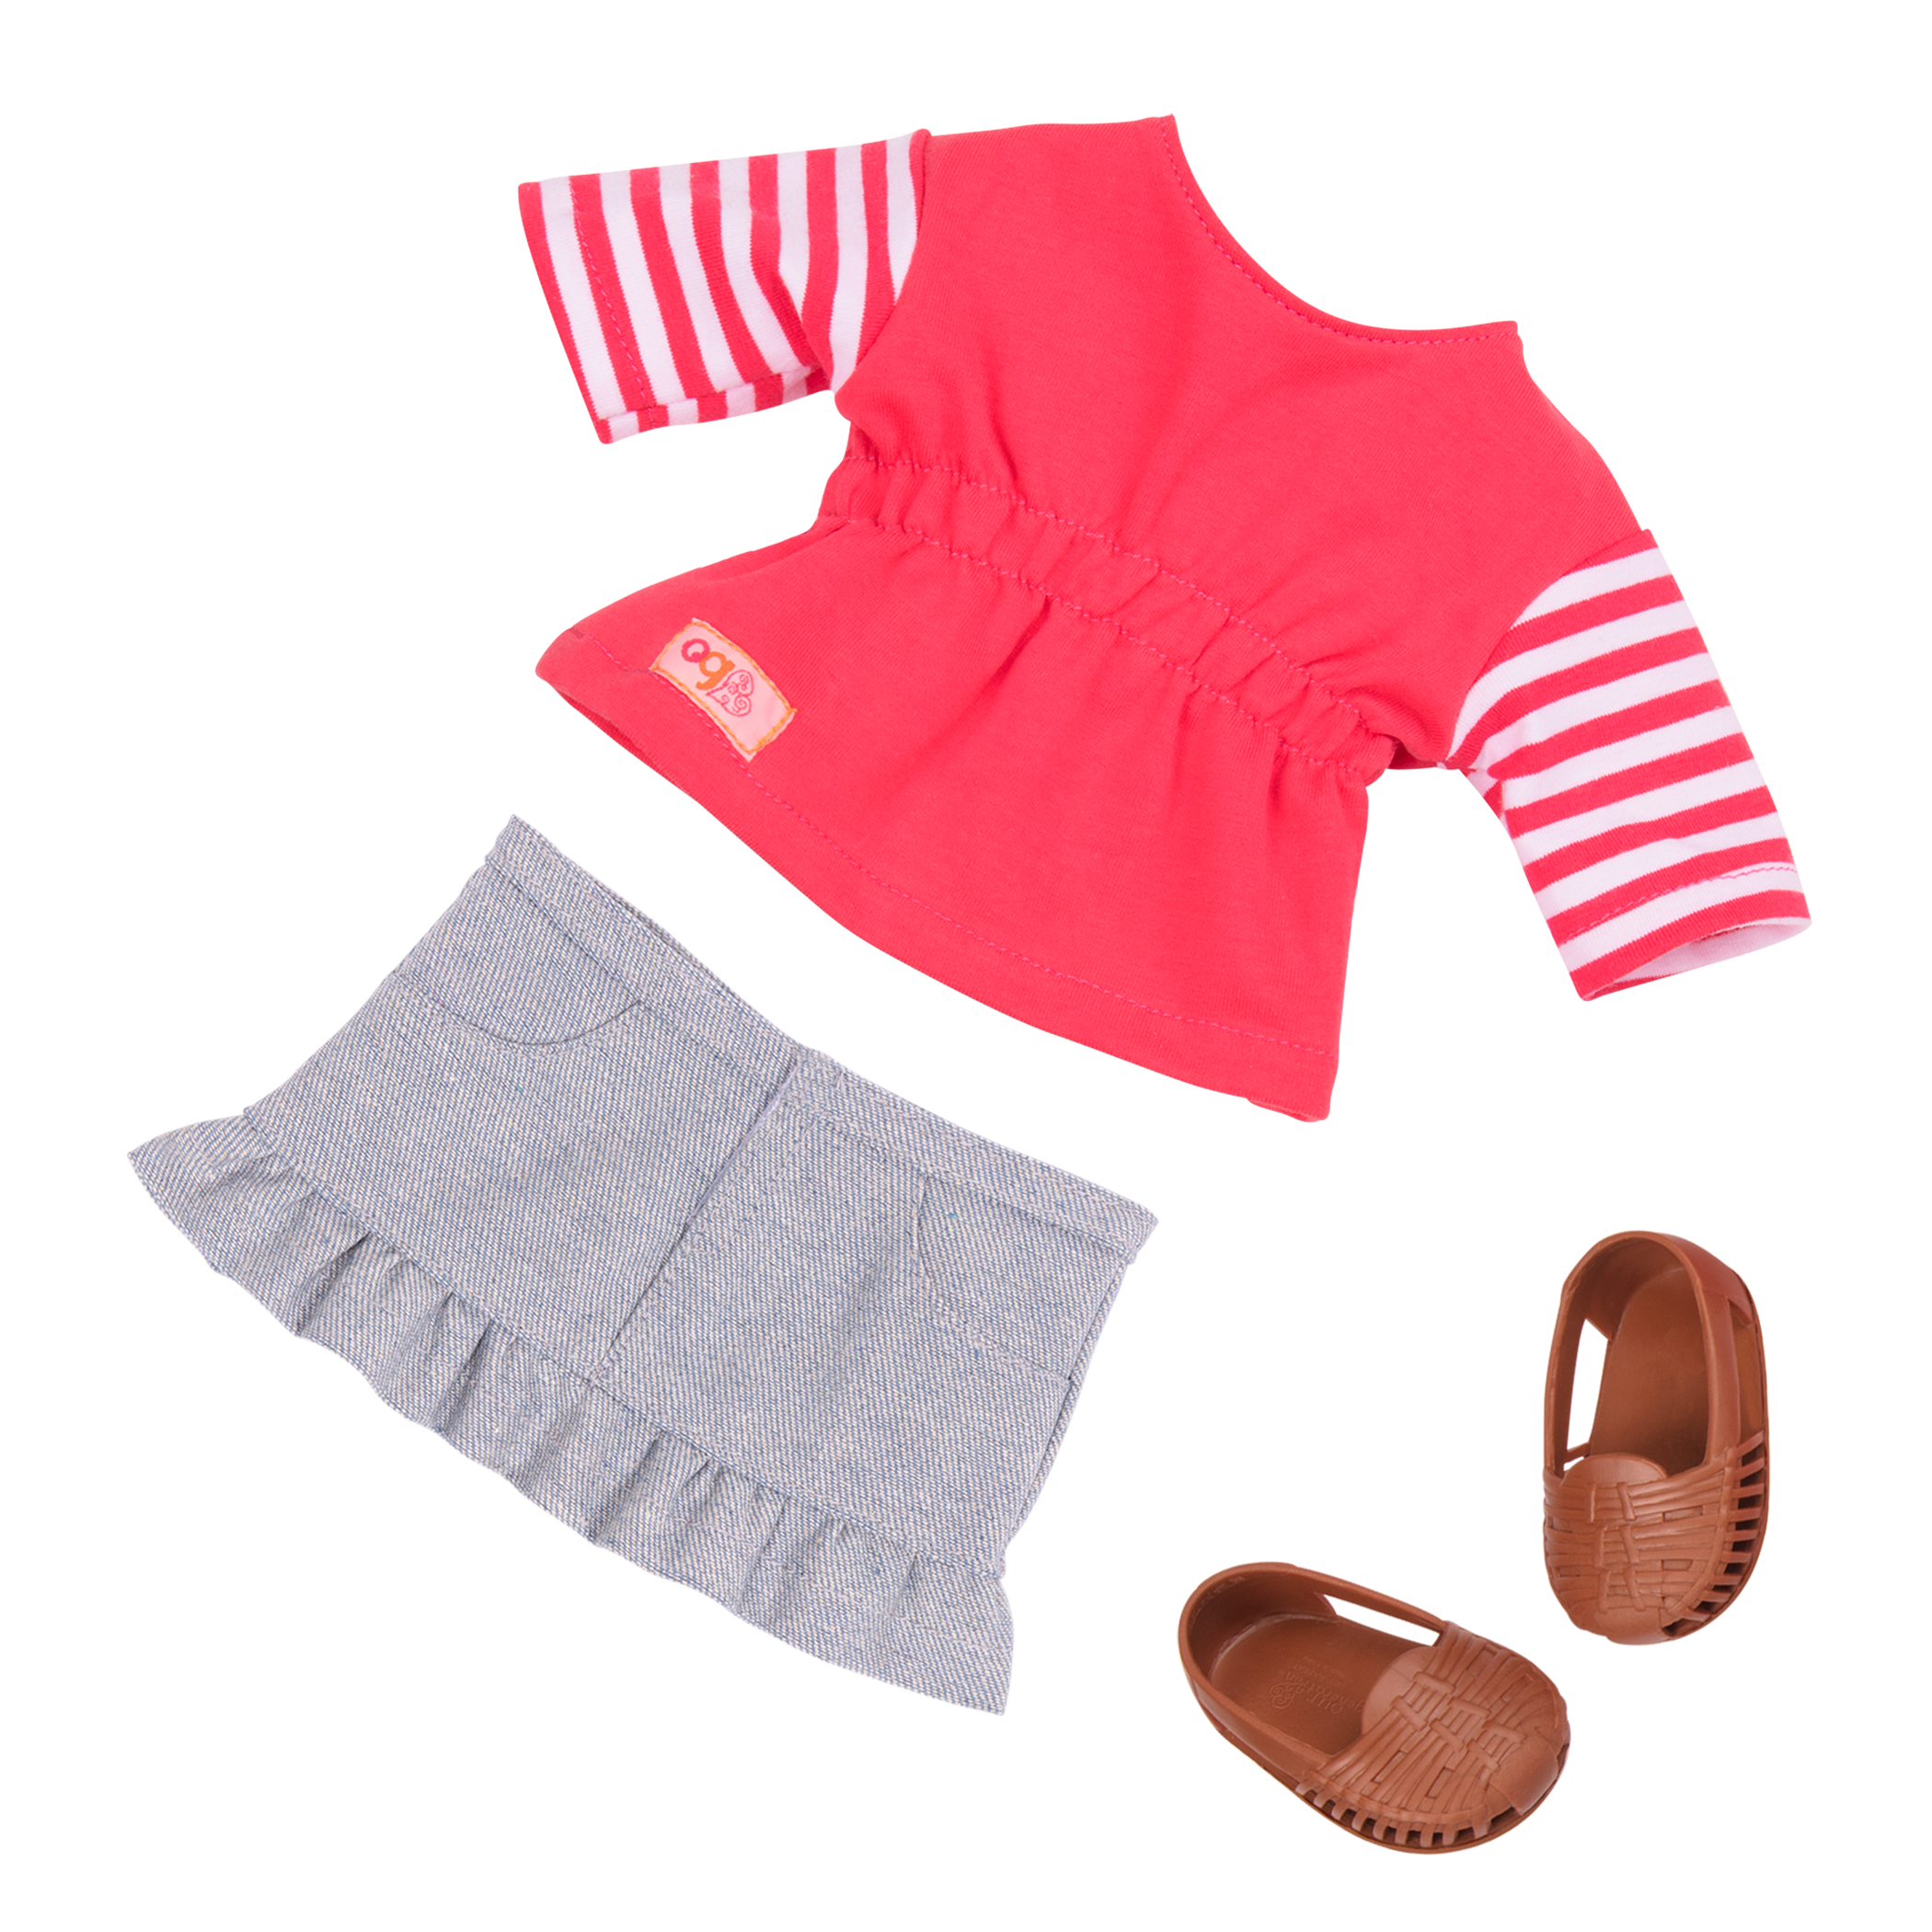 Details of casual outfit